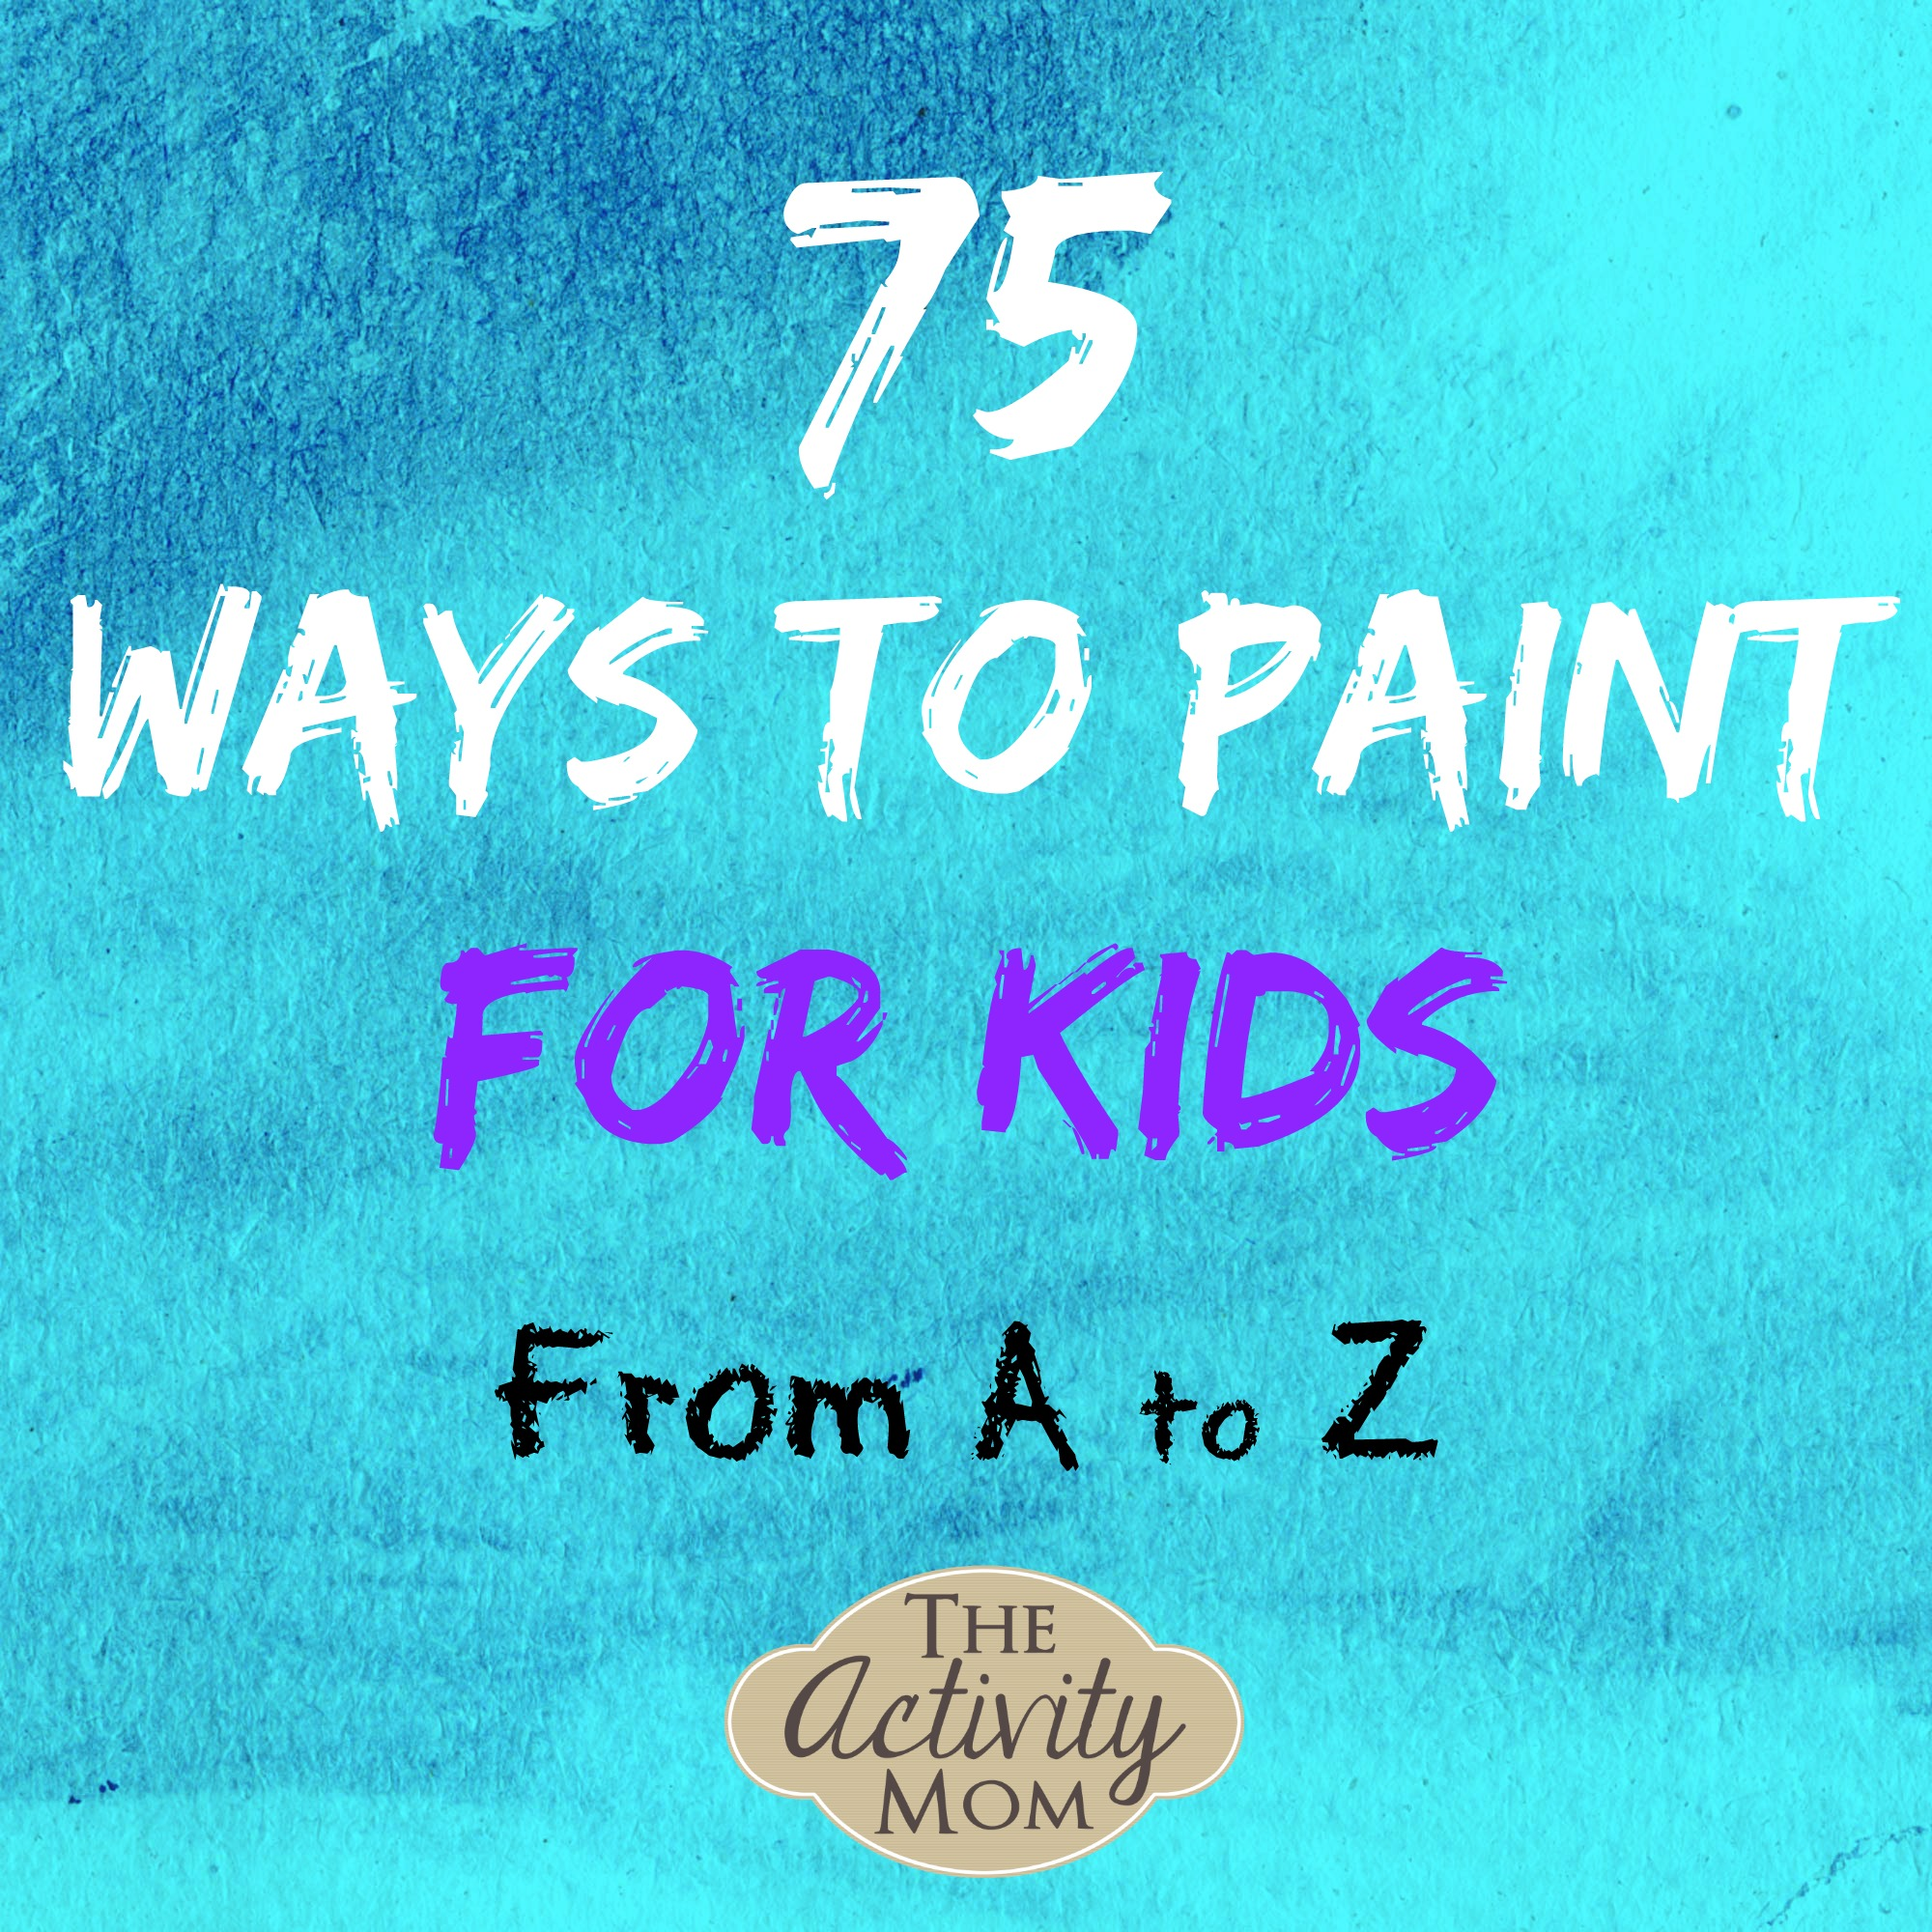 75 Ways to Paint for Kids from A to Z